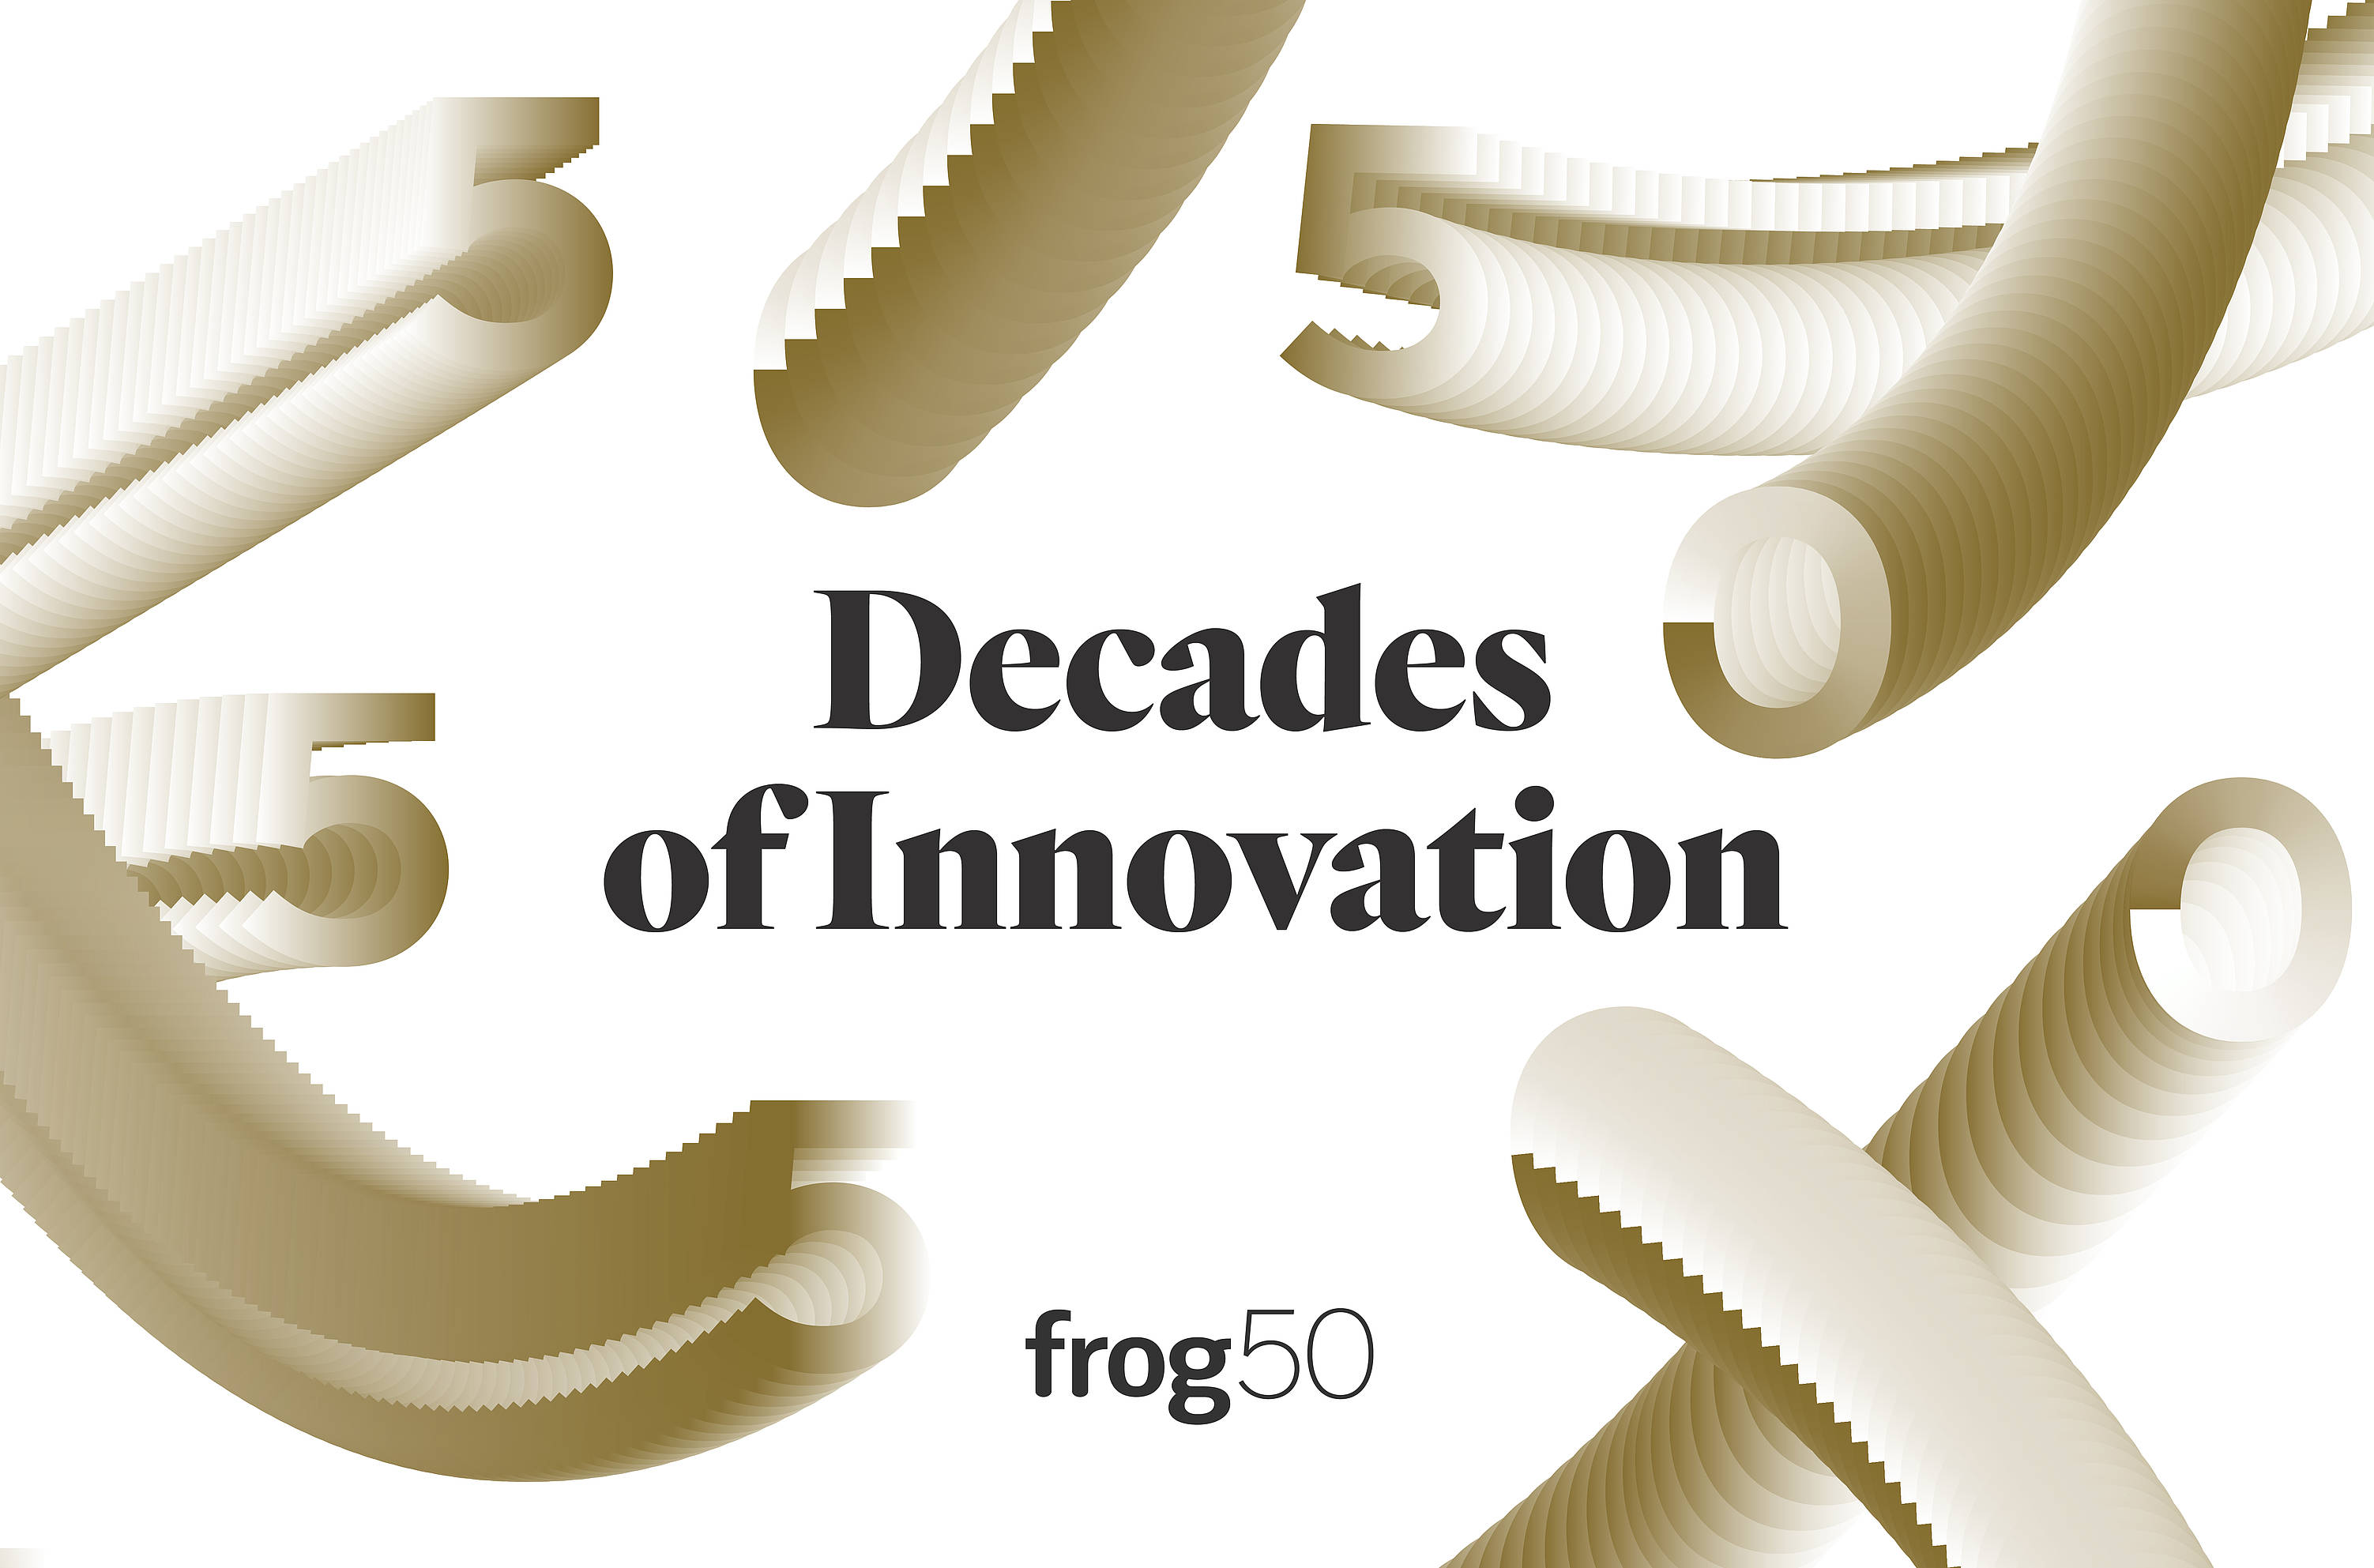 Decades of Innovation